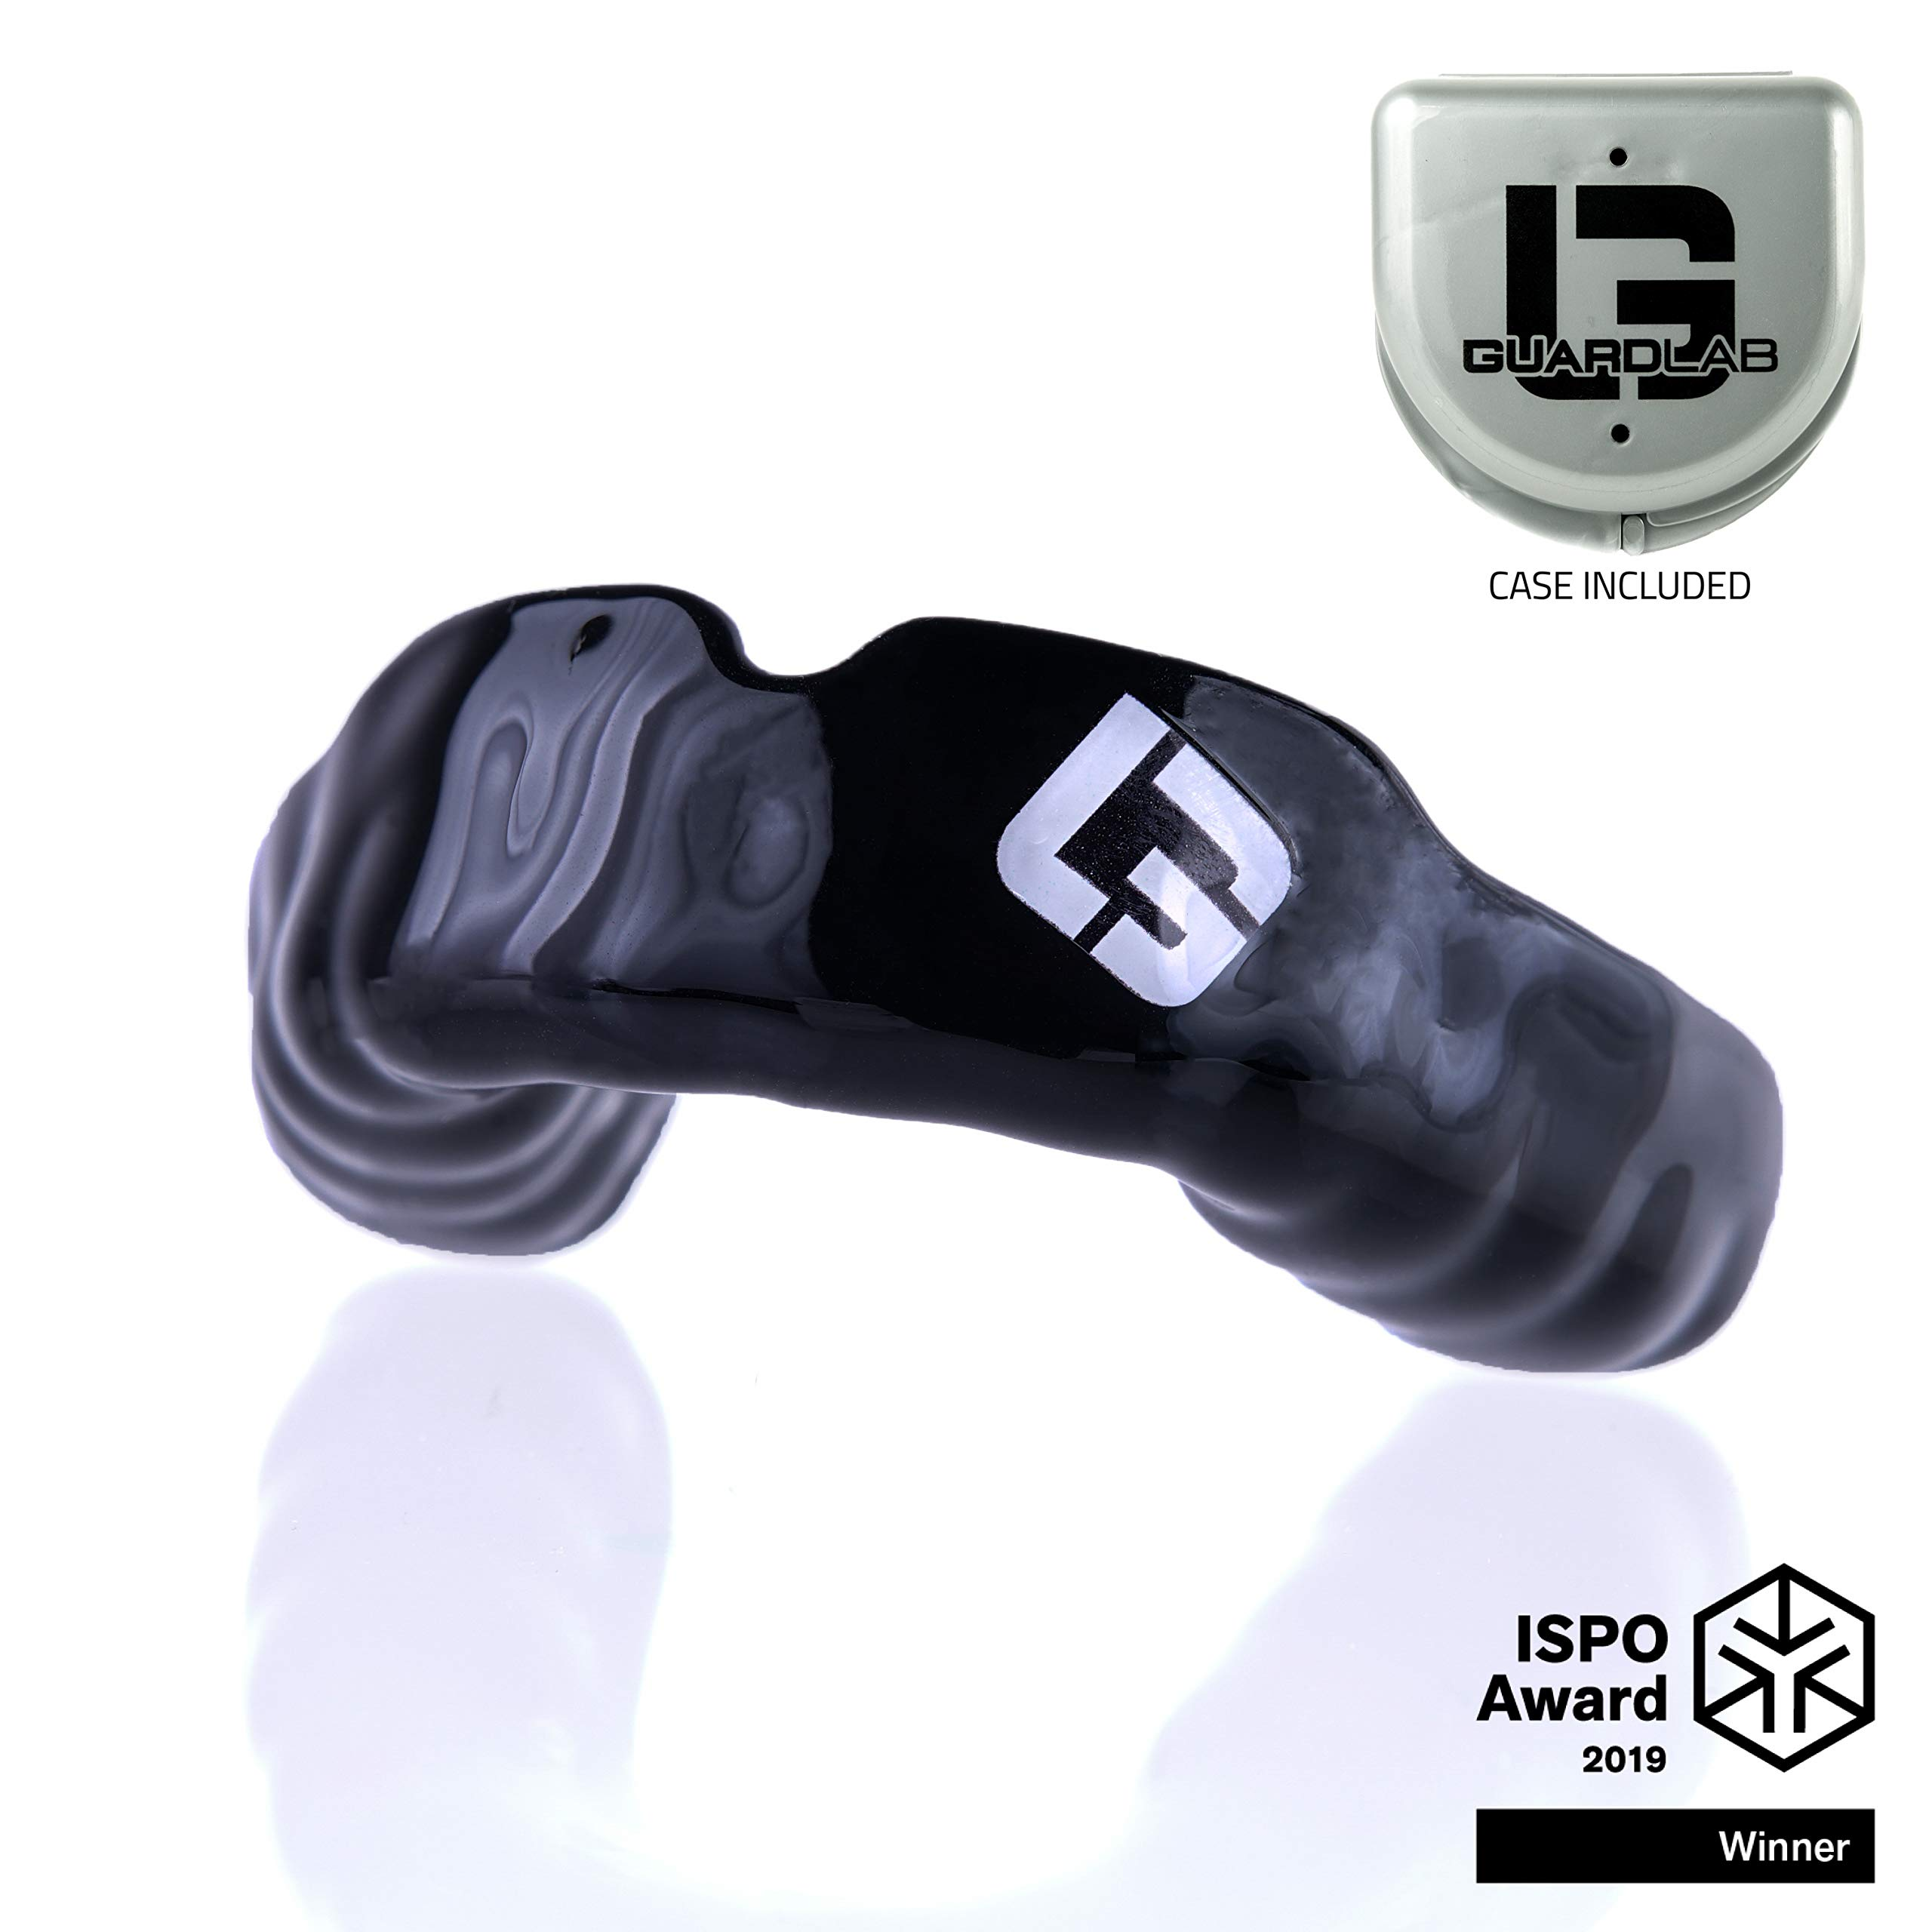 GuardLab APEX Semi-Custom Mouthguard 3D Pre-Indentations | Athletic Safety | High-Tech & Customizable